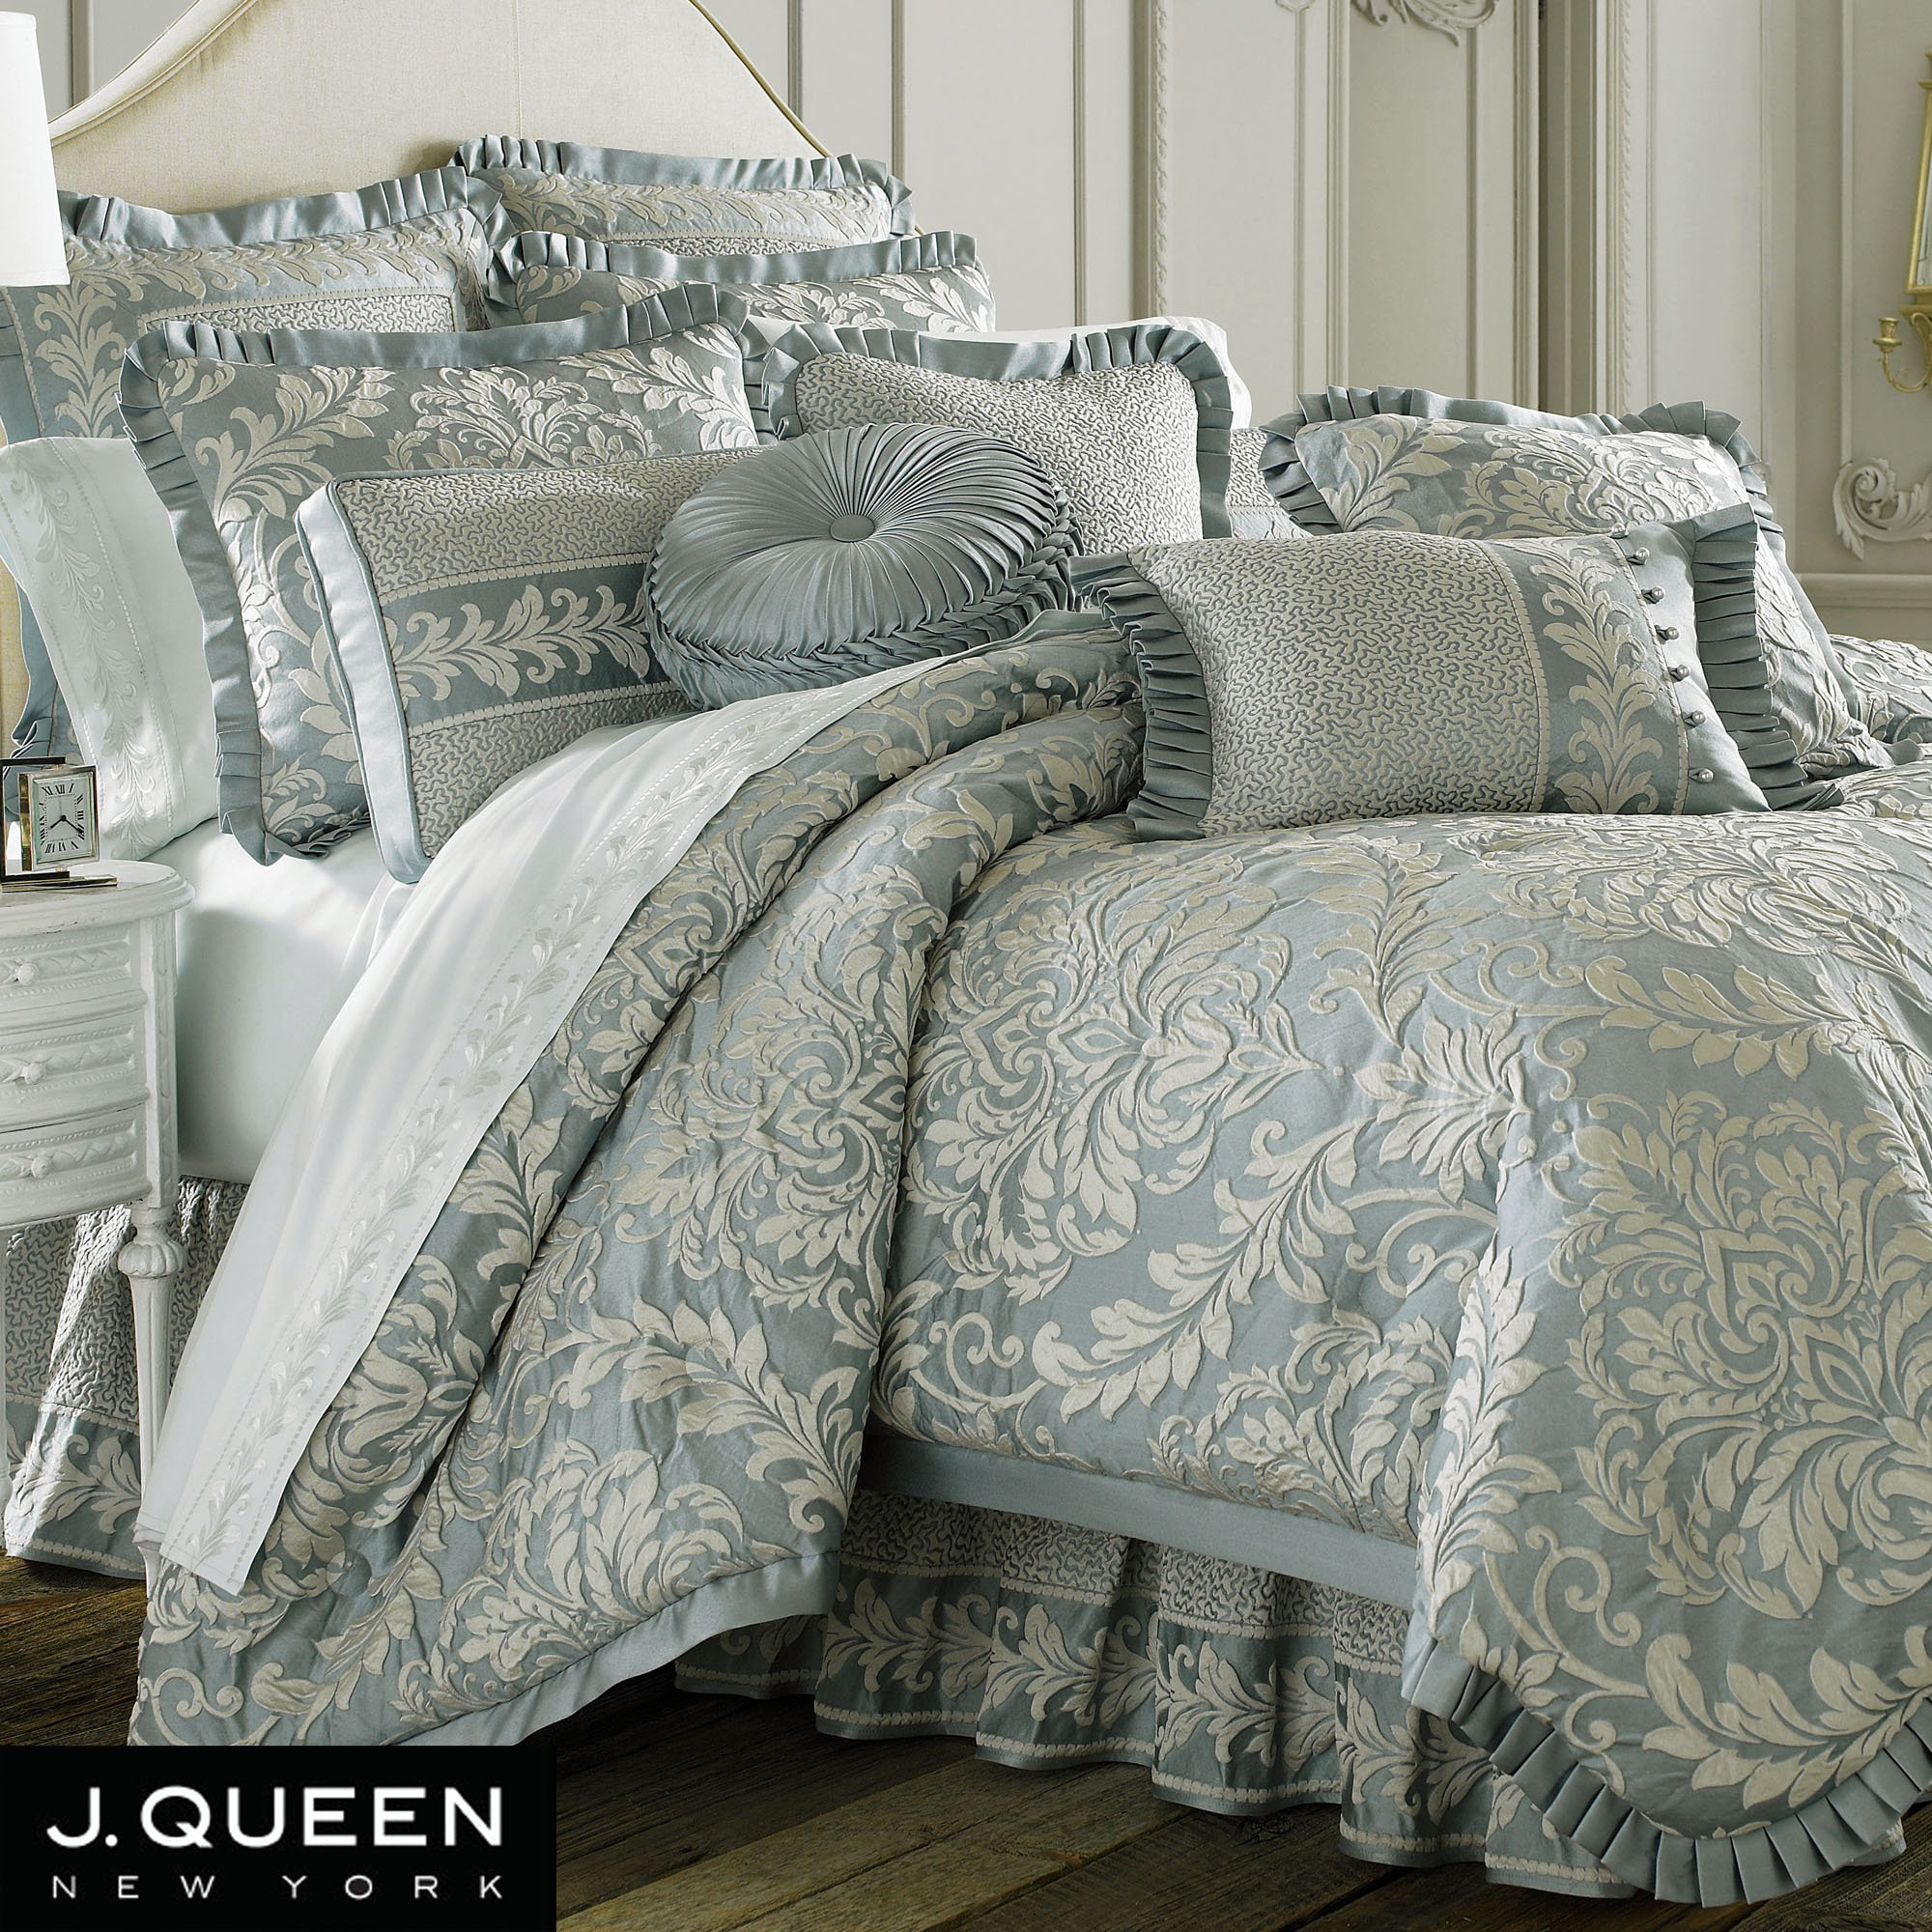 leopard print king queen oversized decoration of comforters sets animal set class luxury touch comforter